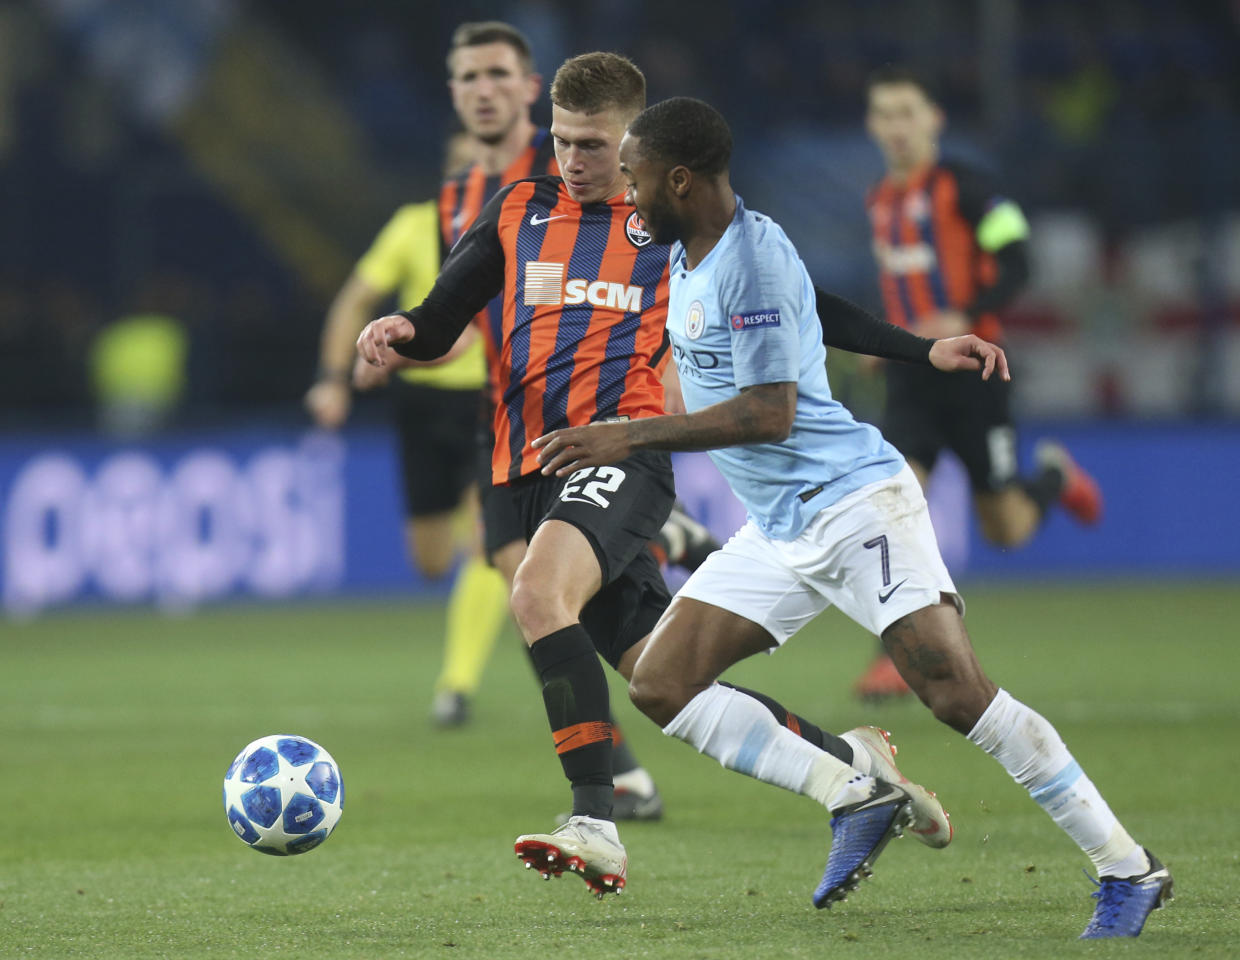 Manchester City Raheem Sterling, right, and Shakhtar Mykola Matviyenko challenge for the ball during the Group F Champions League soccer match between FC Shakhtar Donetsk and Manchester City at the Metalist Stadium in Kharkiv, Ukraine, Tuesday, Oct. 23, 2018. (AP Photo/Efrem Lukatsky)